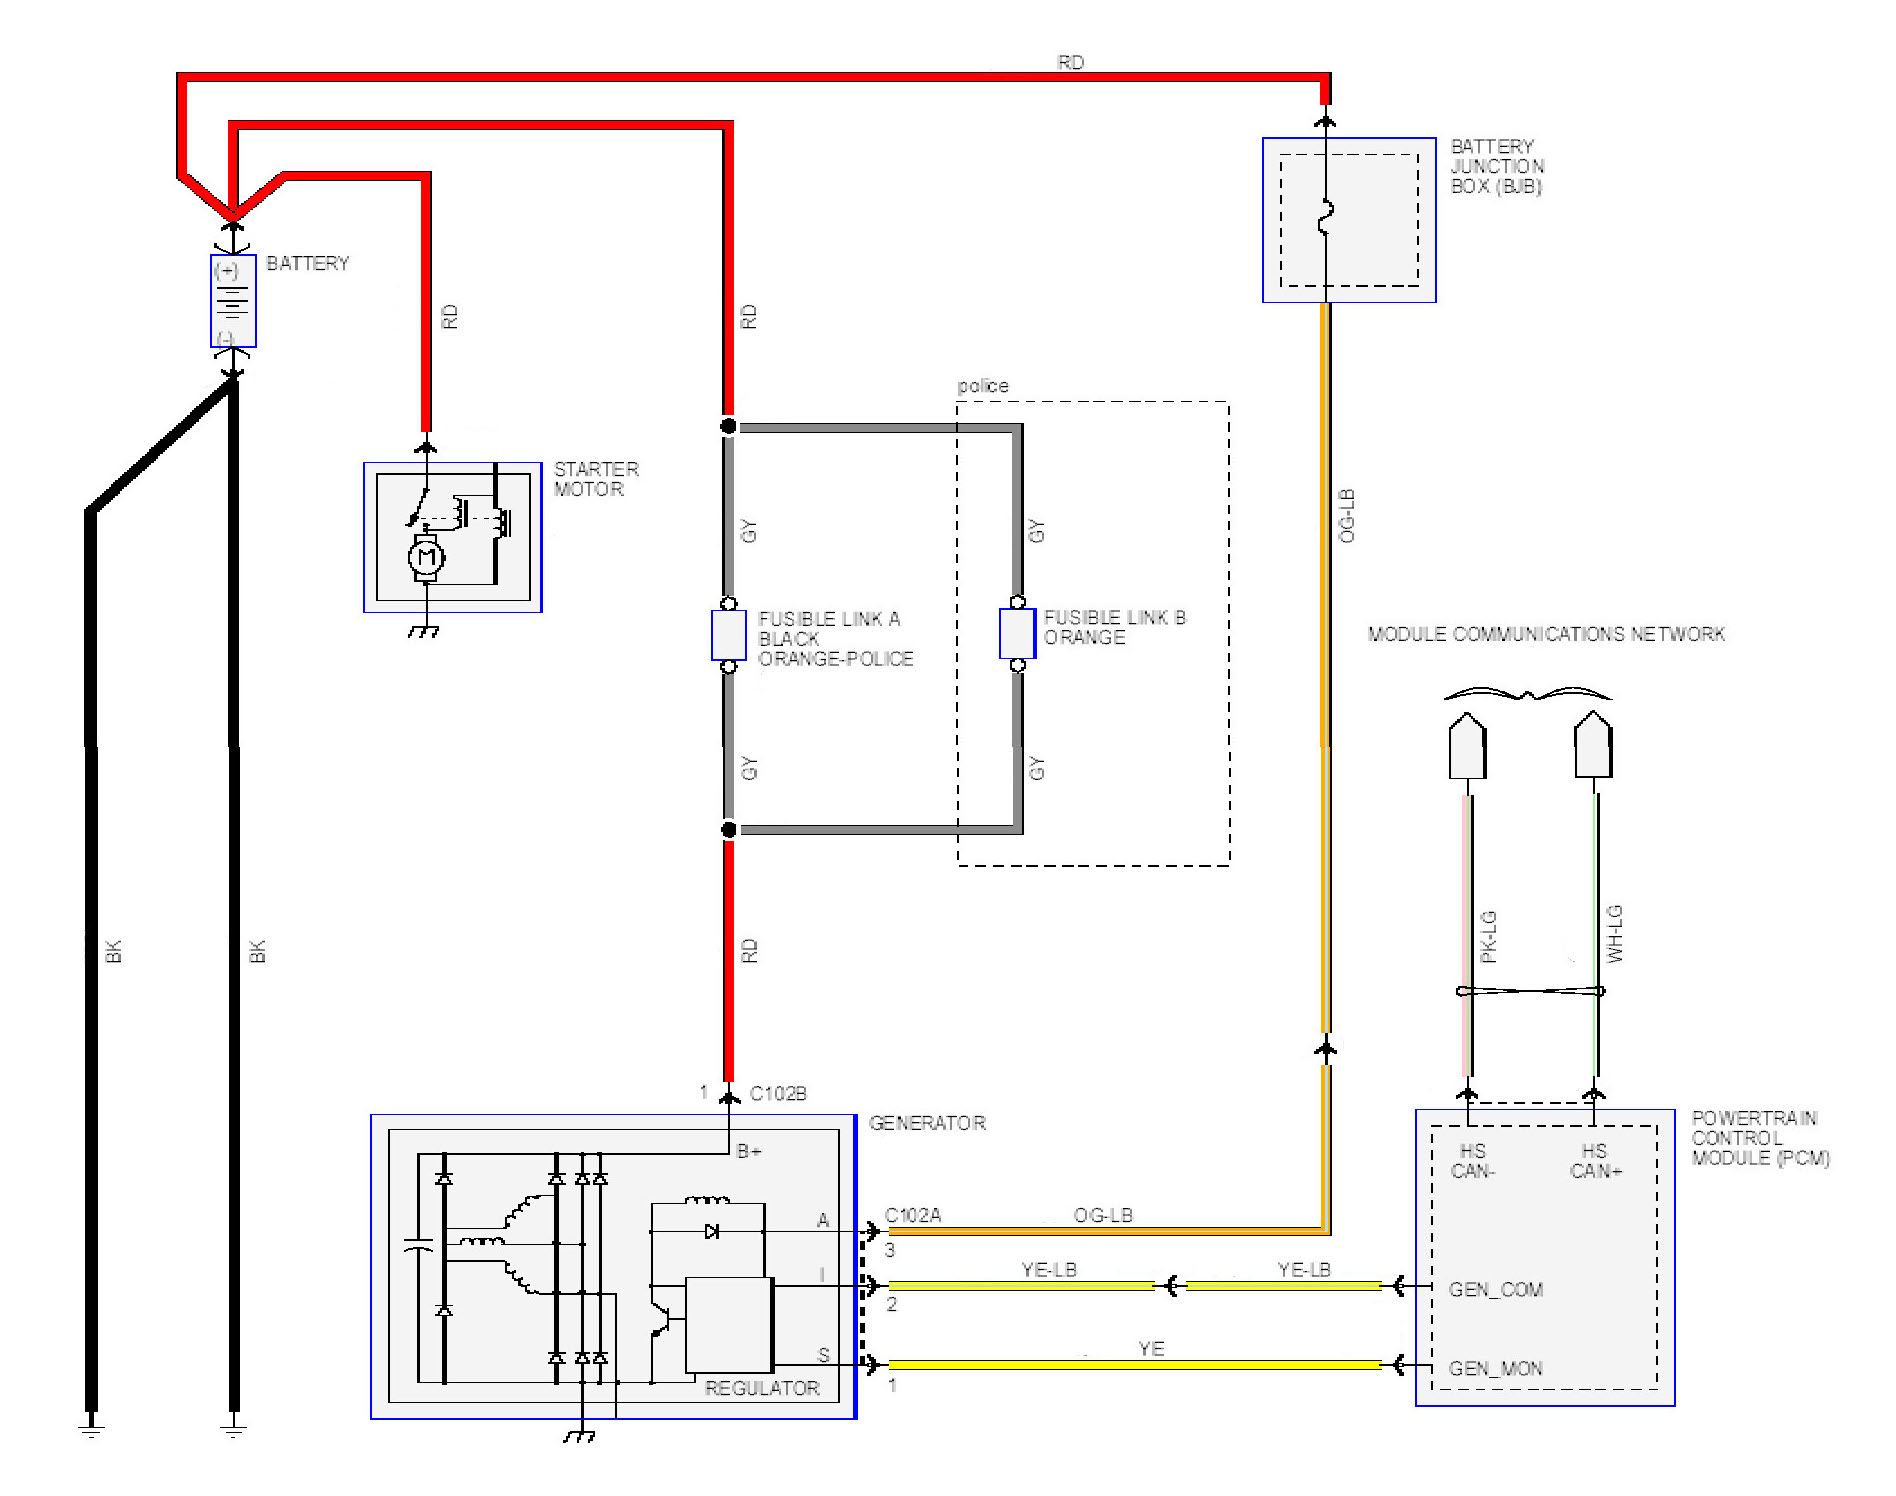 Charging System Wiring Diagrams For 1966 Ford Pick Up Charger Diagram